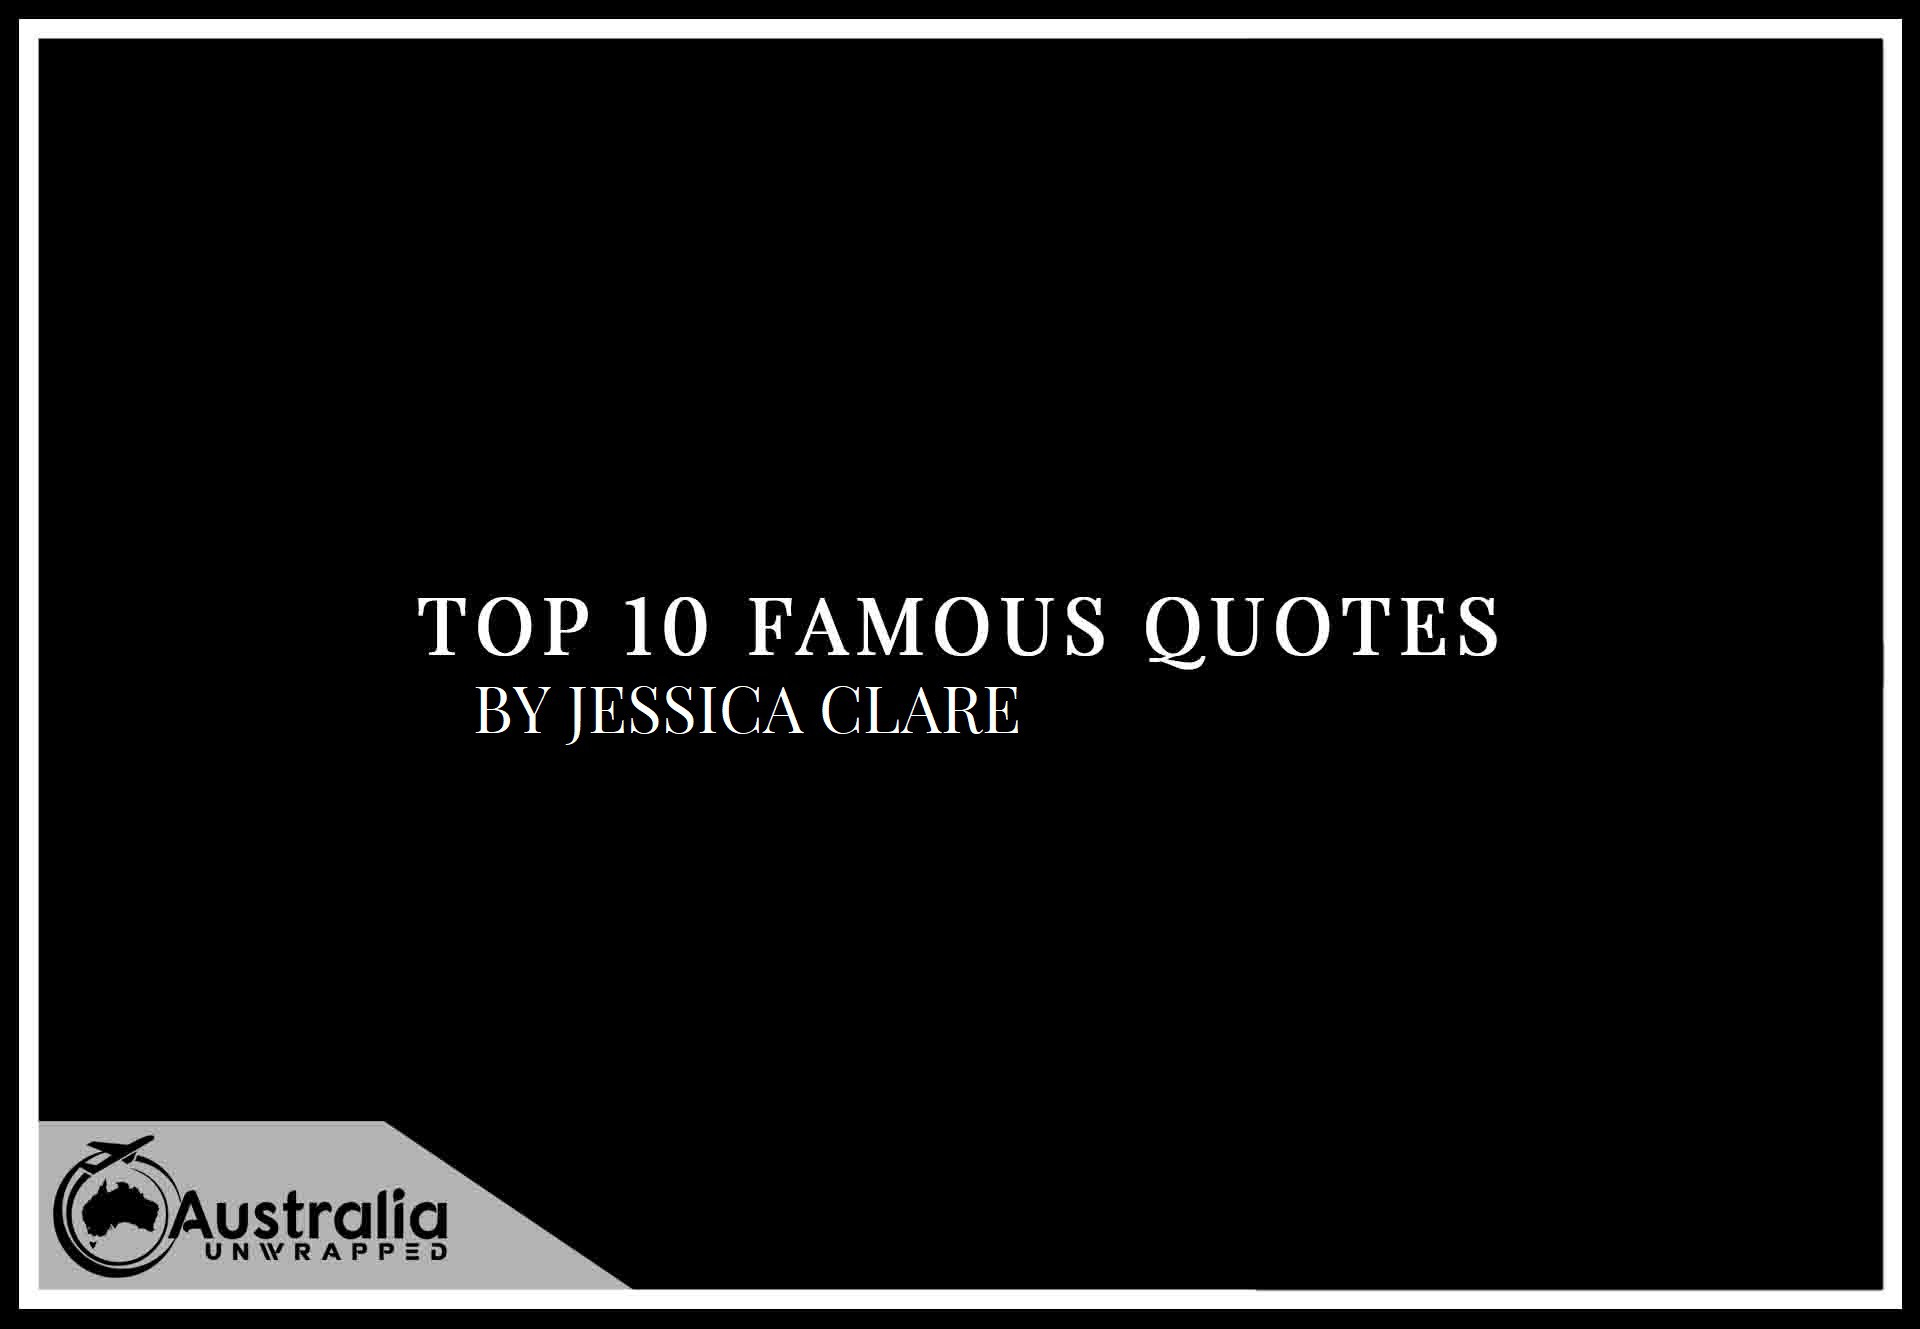 Top 10 Famous Quotes by Author Jessica Clare